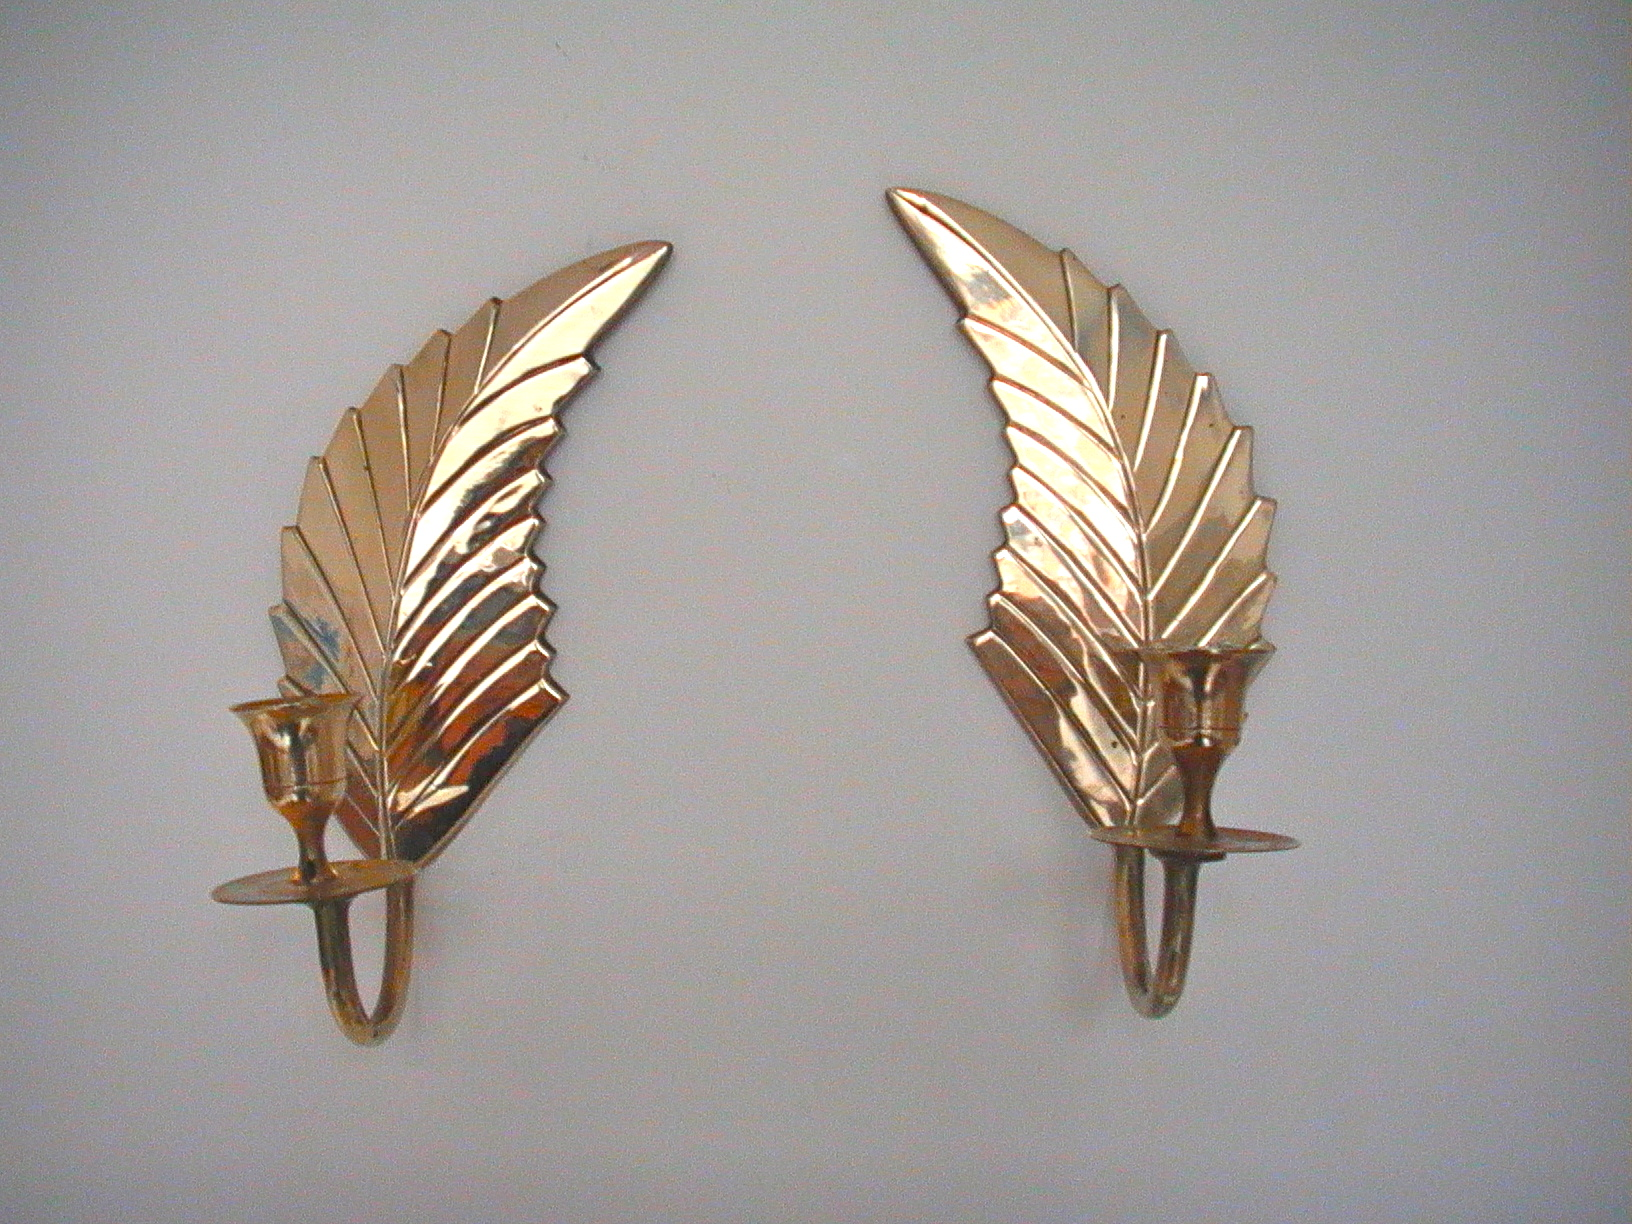 Sold Amsterdam The Netherlands Pair Of Gorgeous Shiny Hollywood Regency Boho Chic Feather Wall Candle Holders Vintagonist